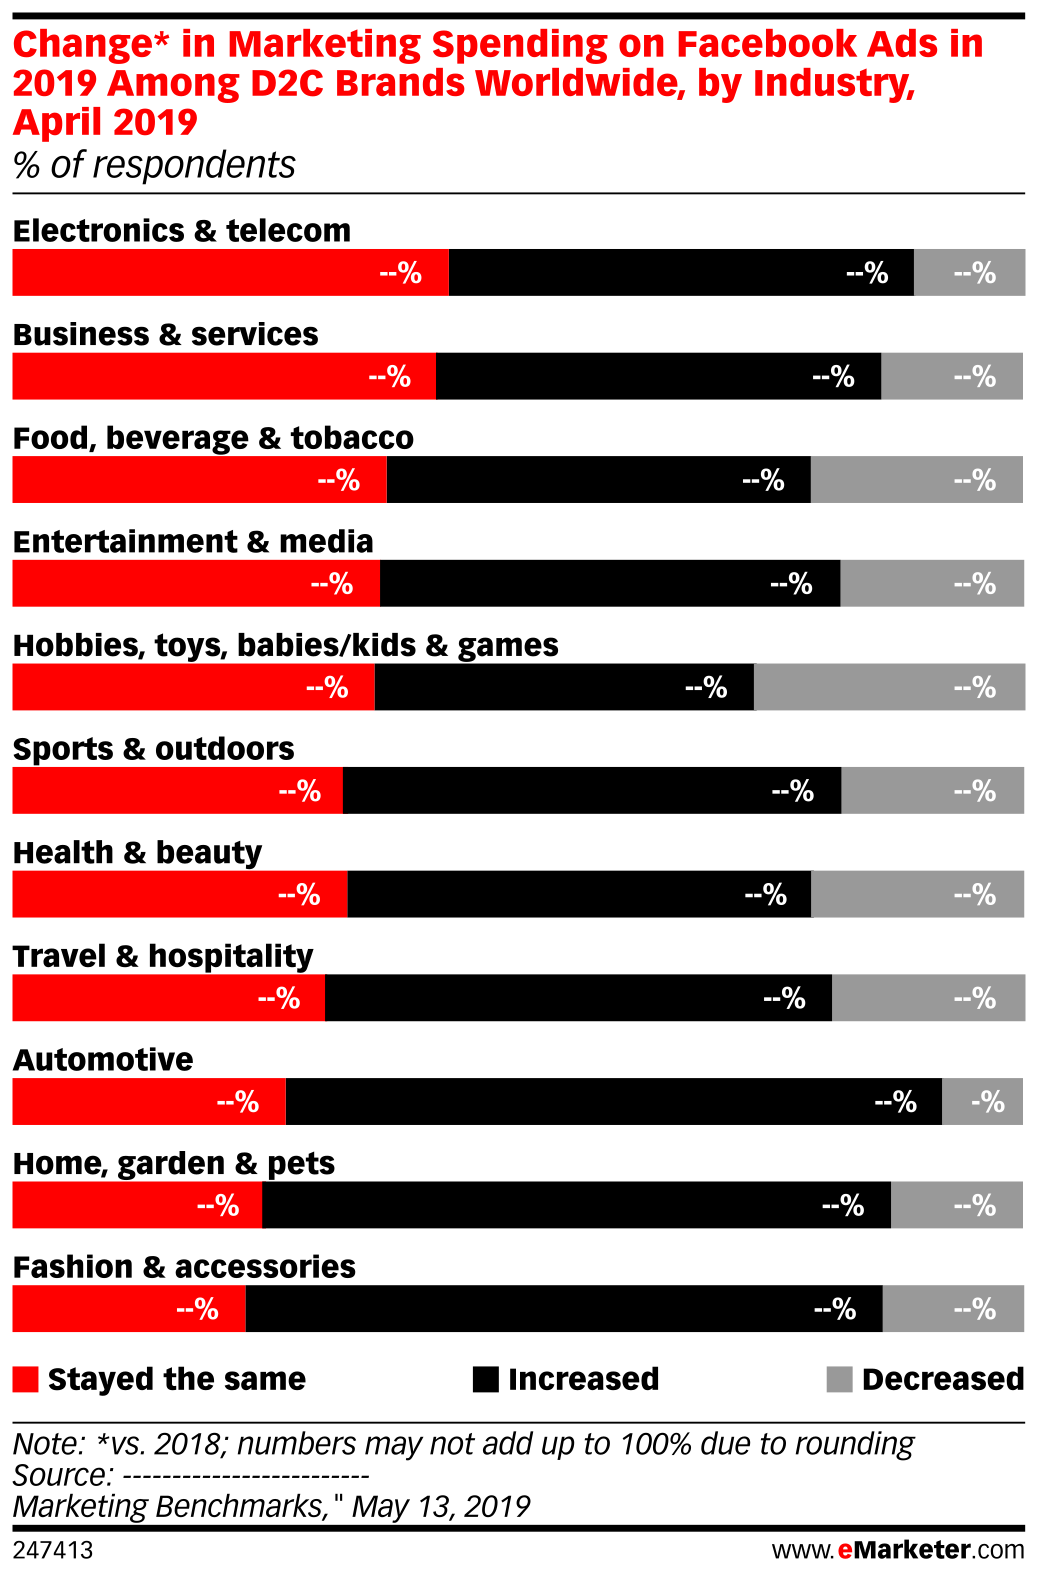 Change* in Marketing Spending on Facebook Ads in 2019 Among D2C Brands Worldwide, by Industry, April 2019 (% of respondents)